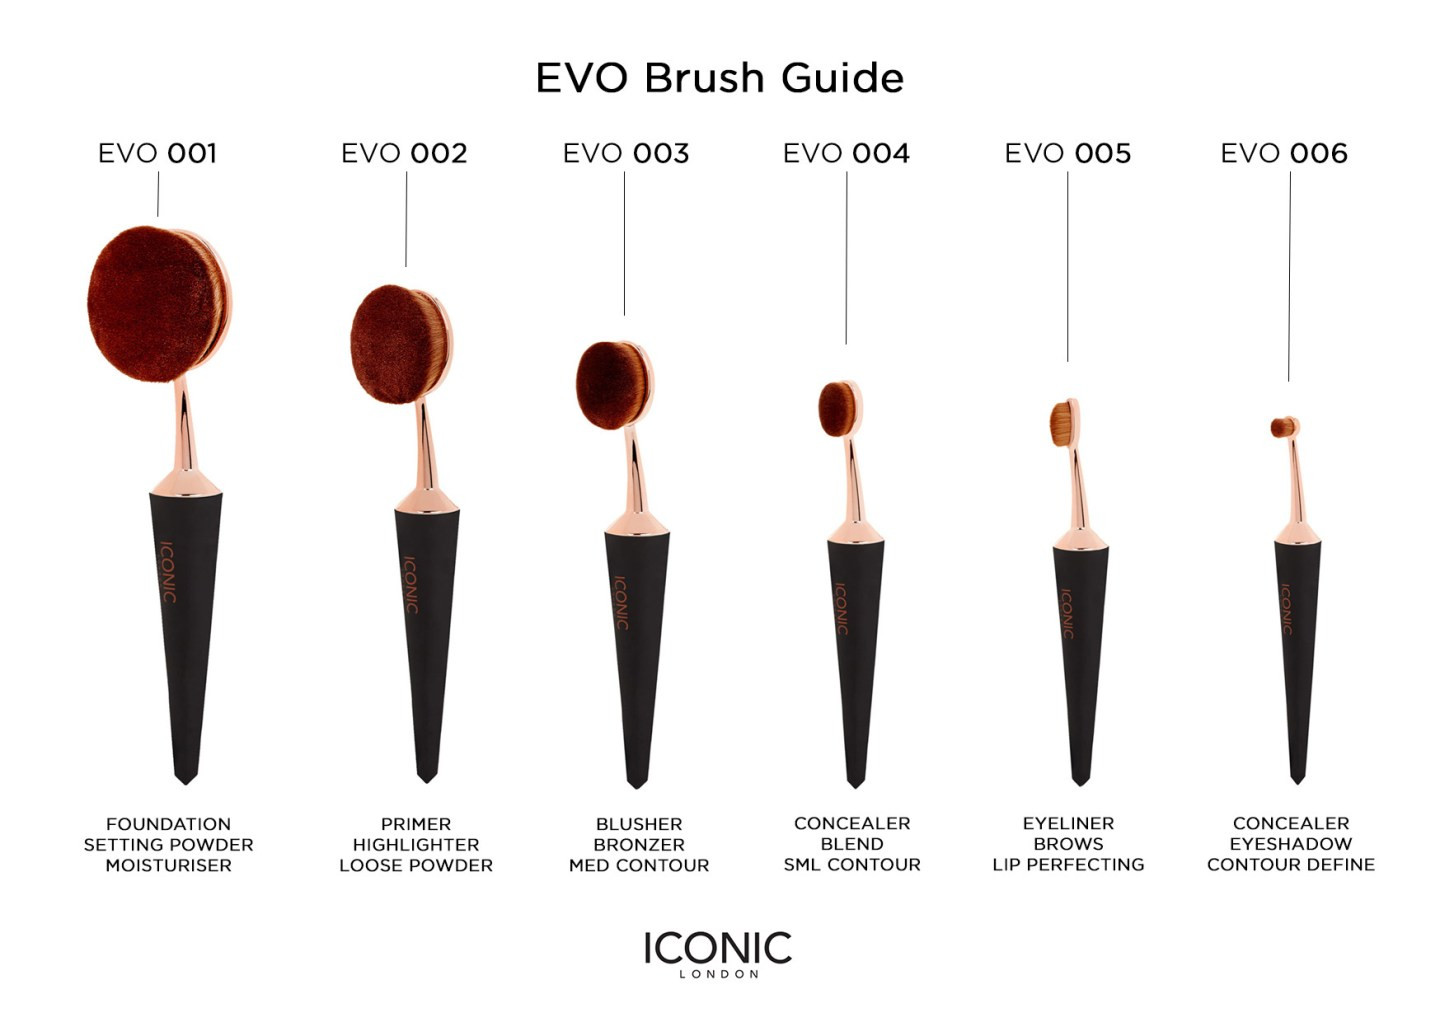 evo-brush-guide-raychel-says-iconic-london